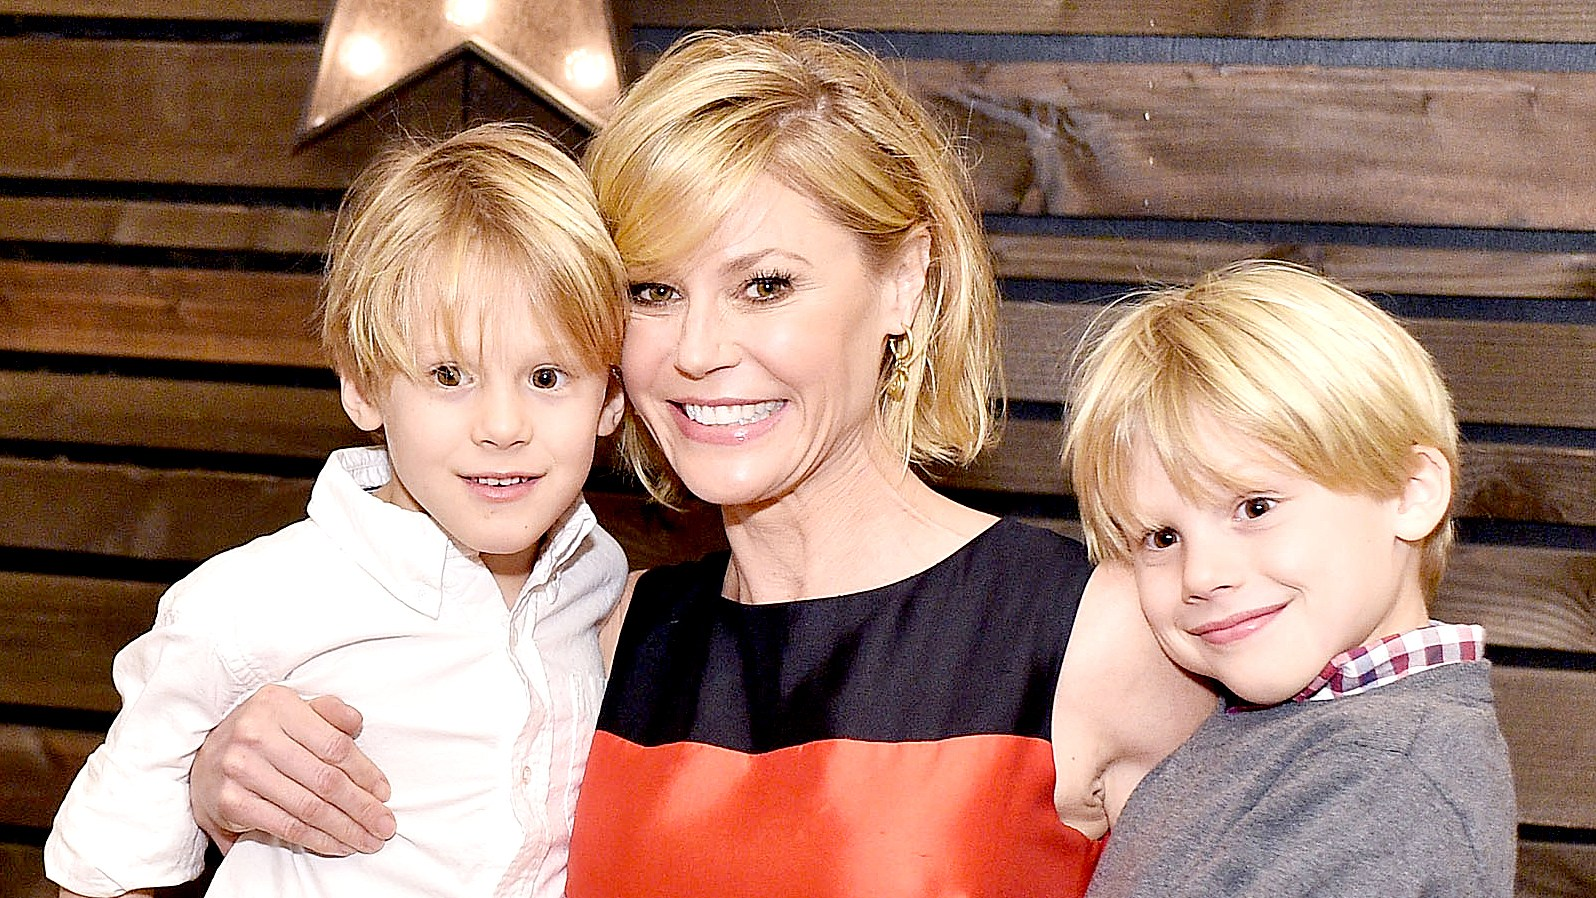 Julie Bowen and sons attend the Baby2Baby Holiday Party Presented By Tiny Prints At Montage Beverly Hills on December 6, 2015 in Beverly Hills, California.